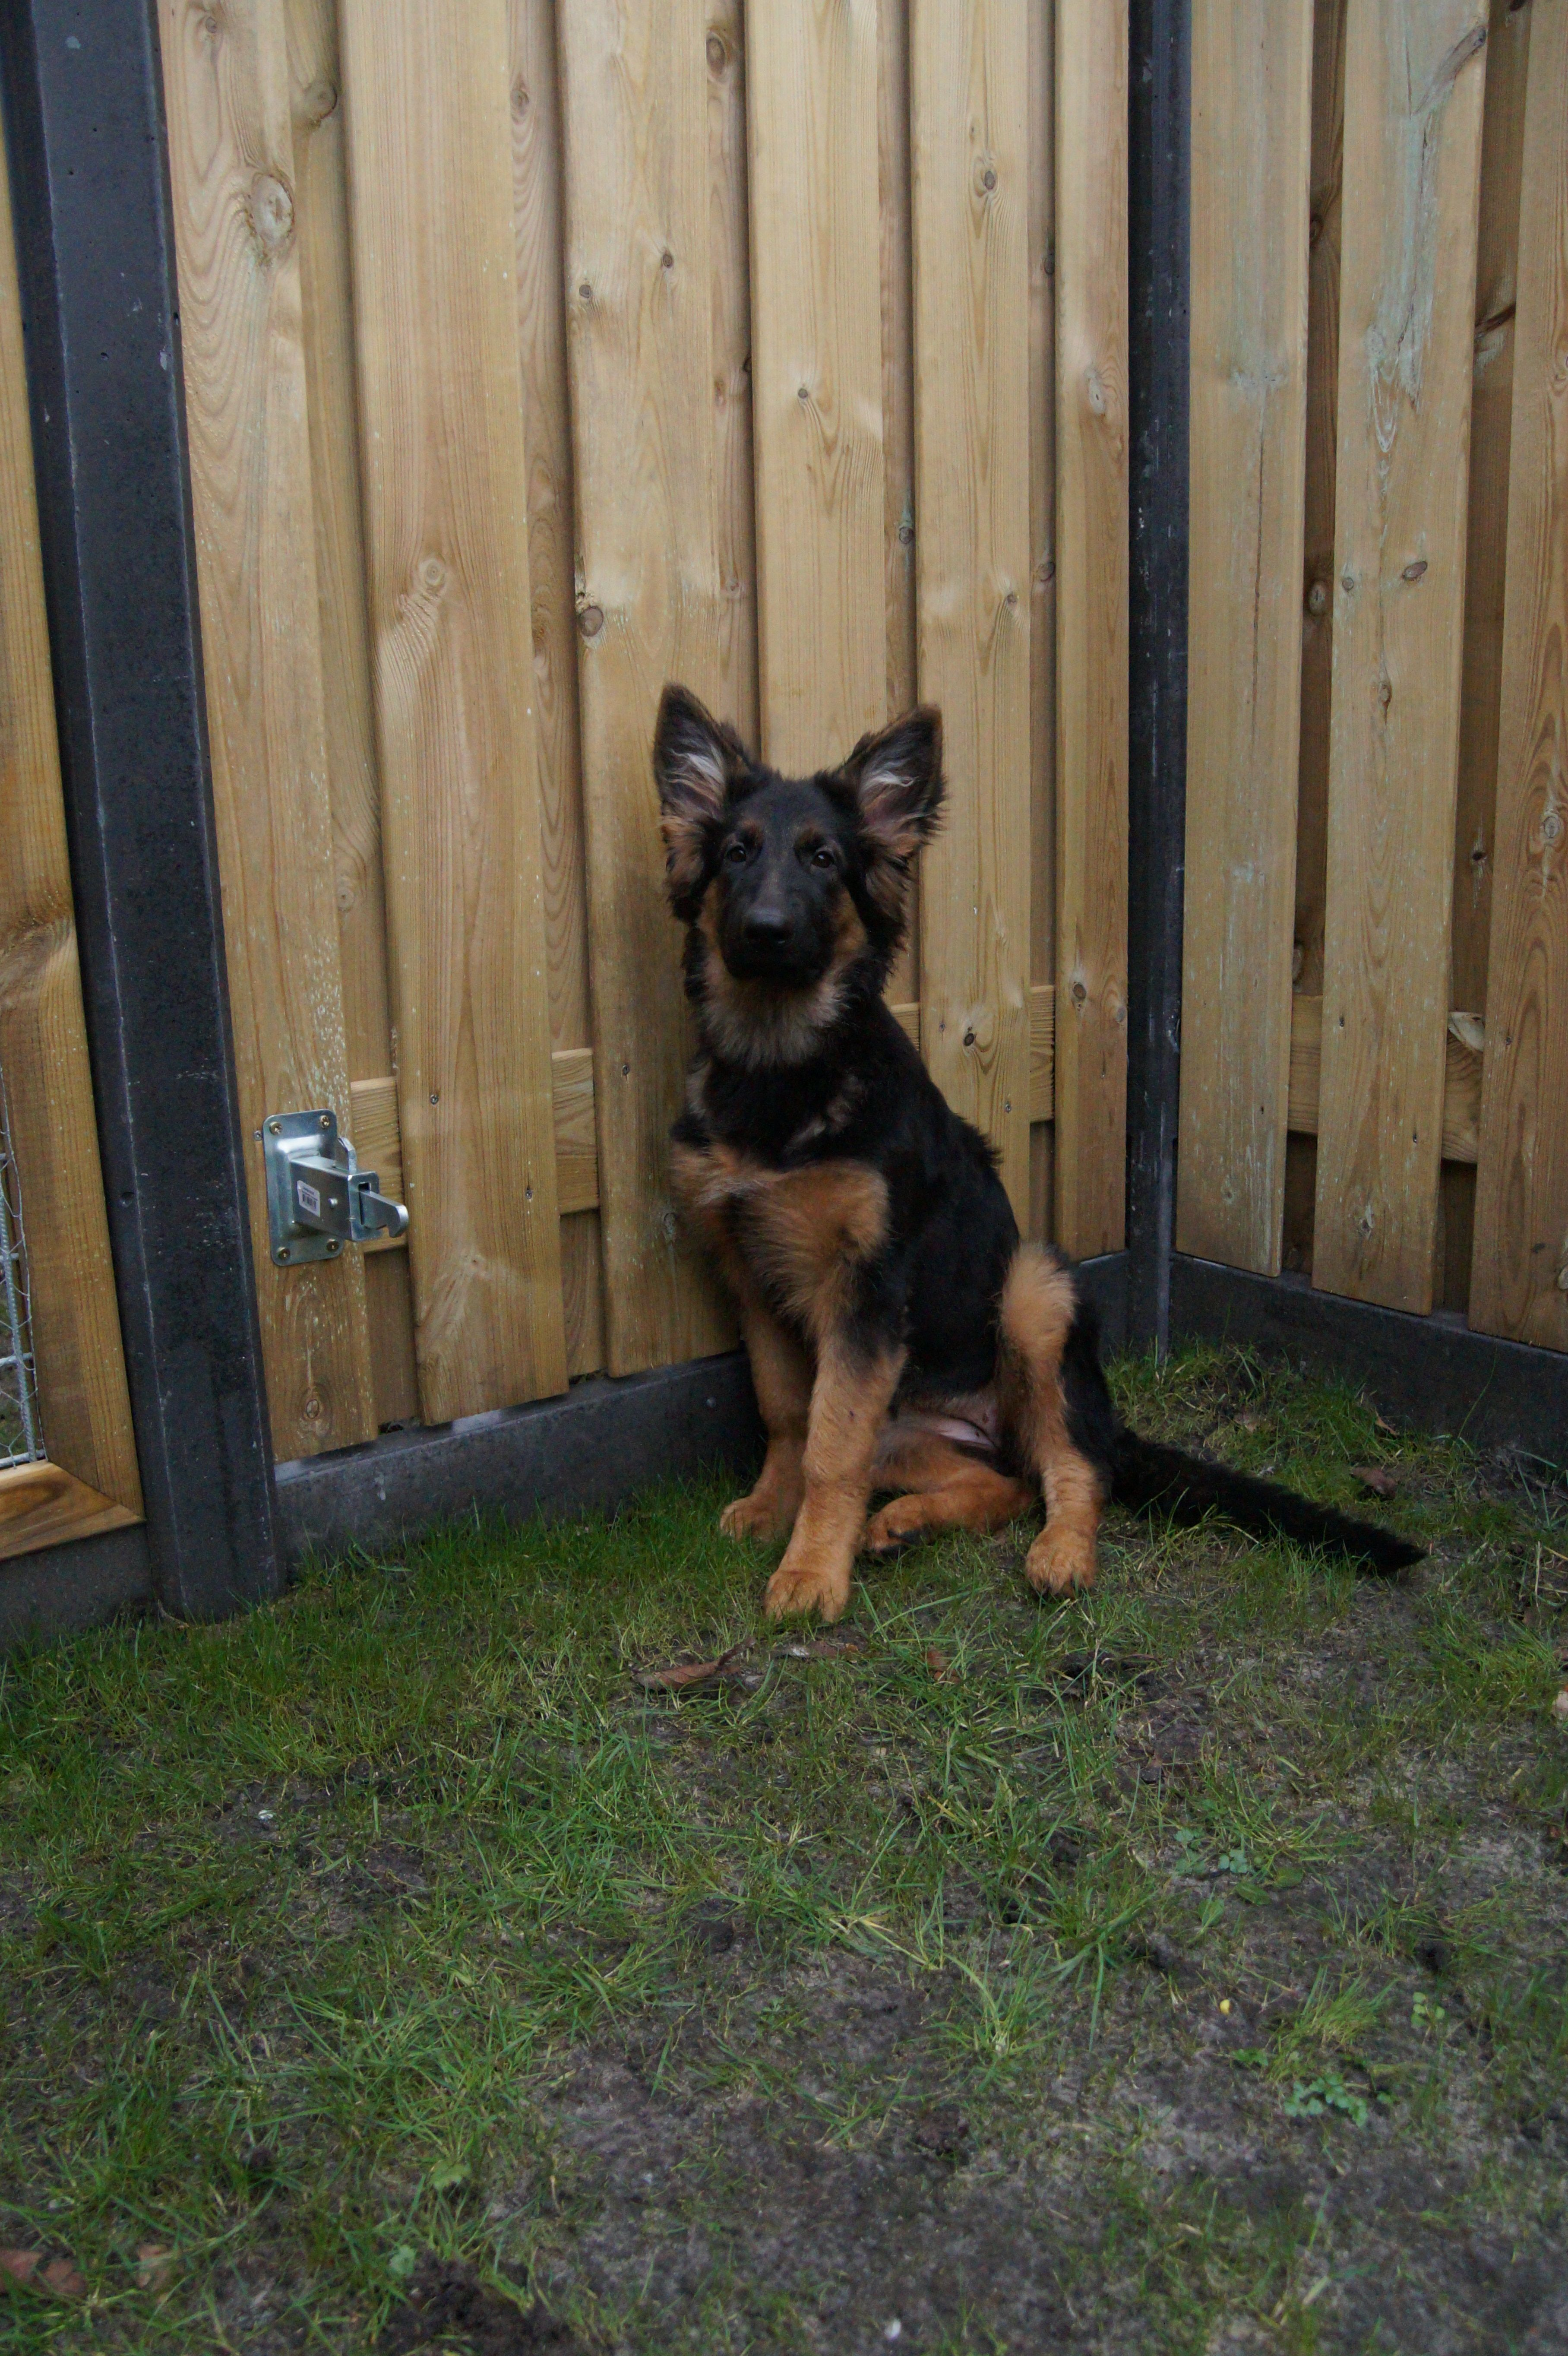 Pin By Steve On Puppys Dogs And Puppies German Shepherd Puppies